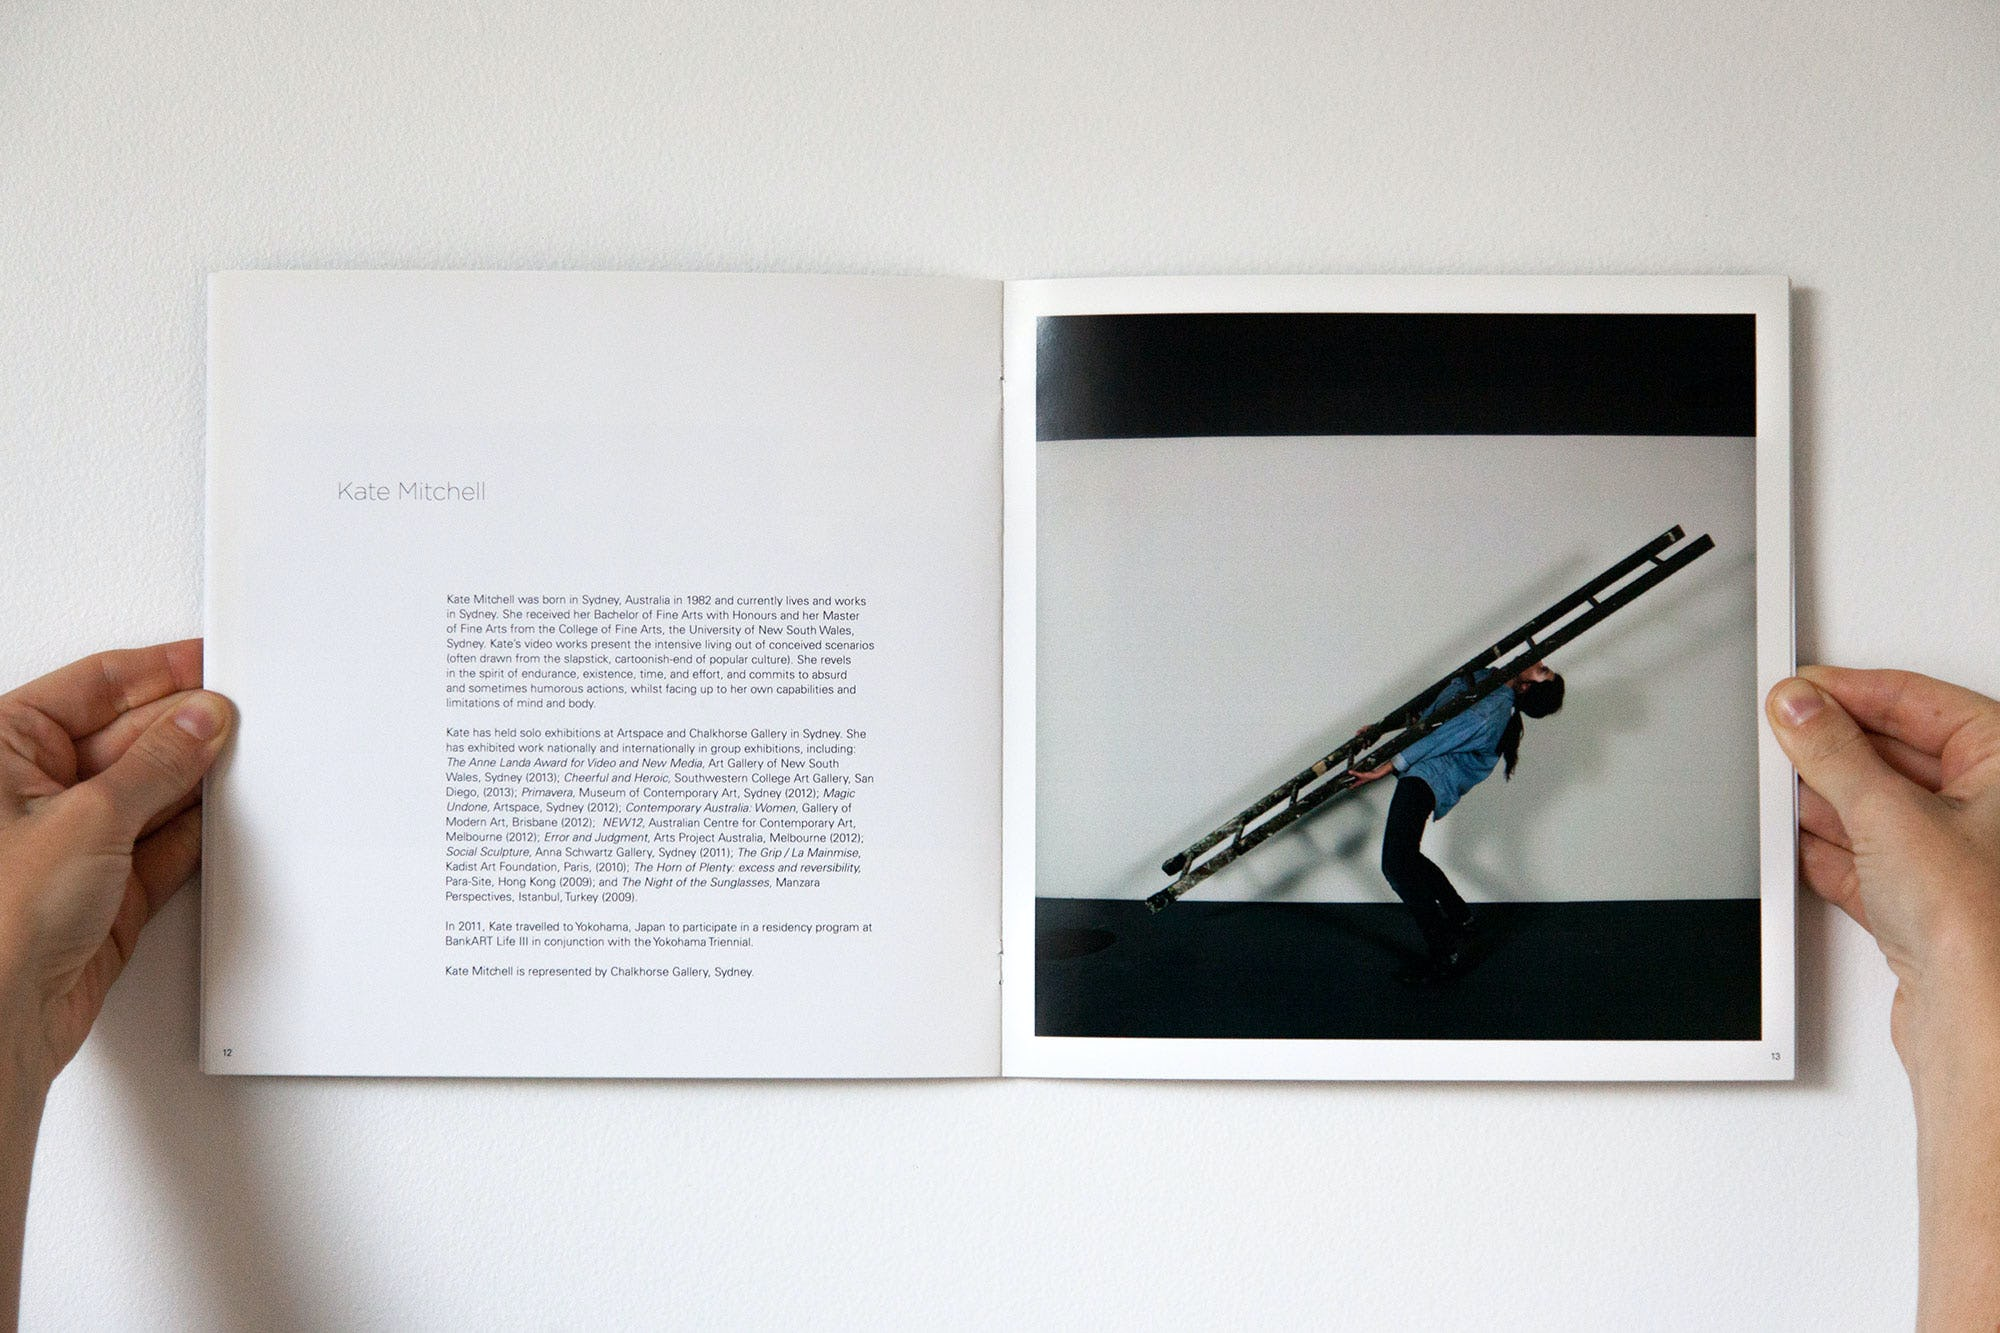 Spread from 7 Points exhibition catalogue